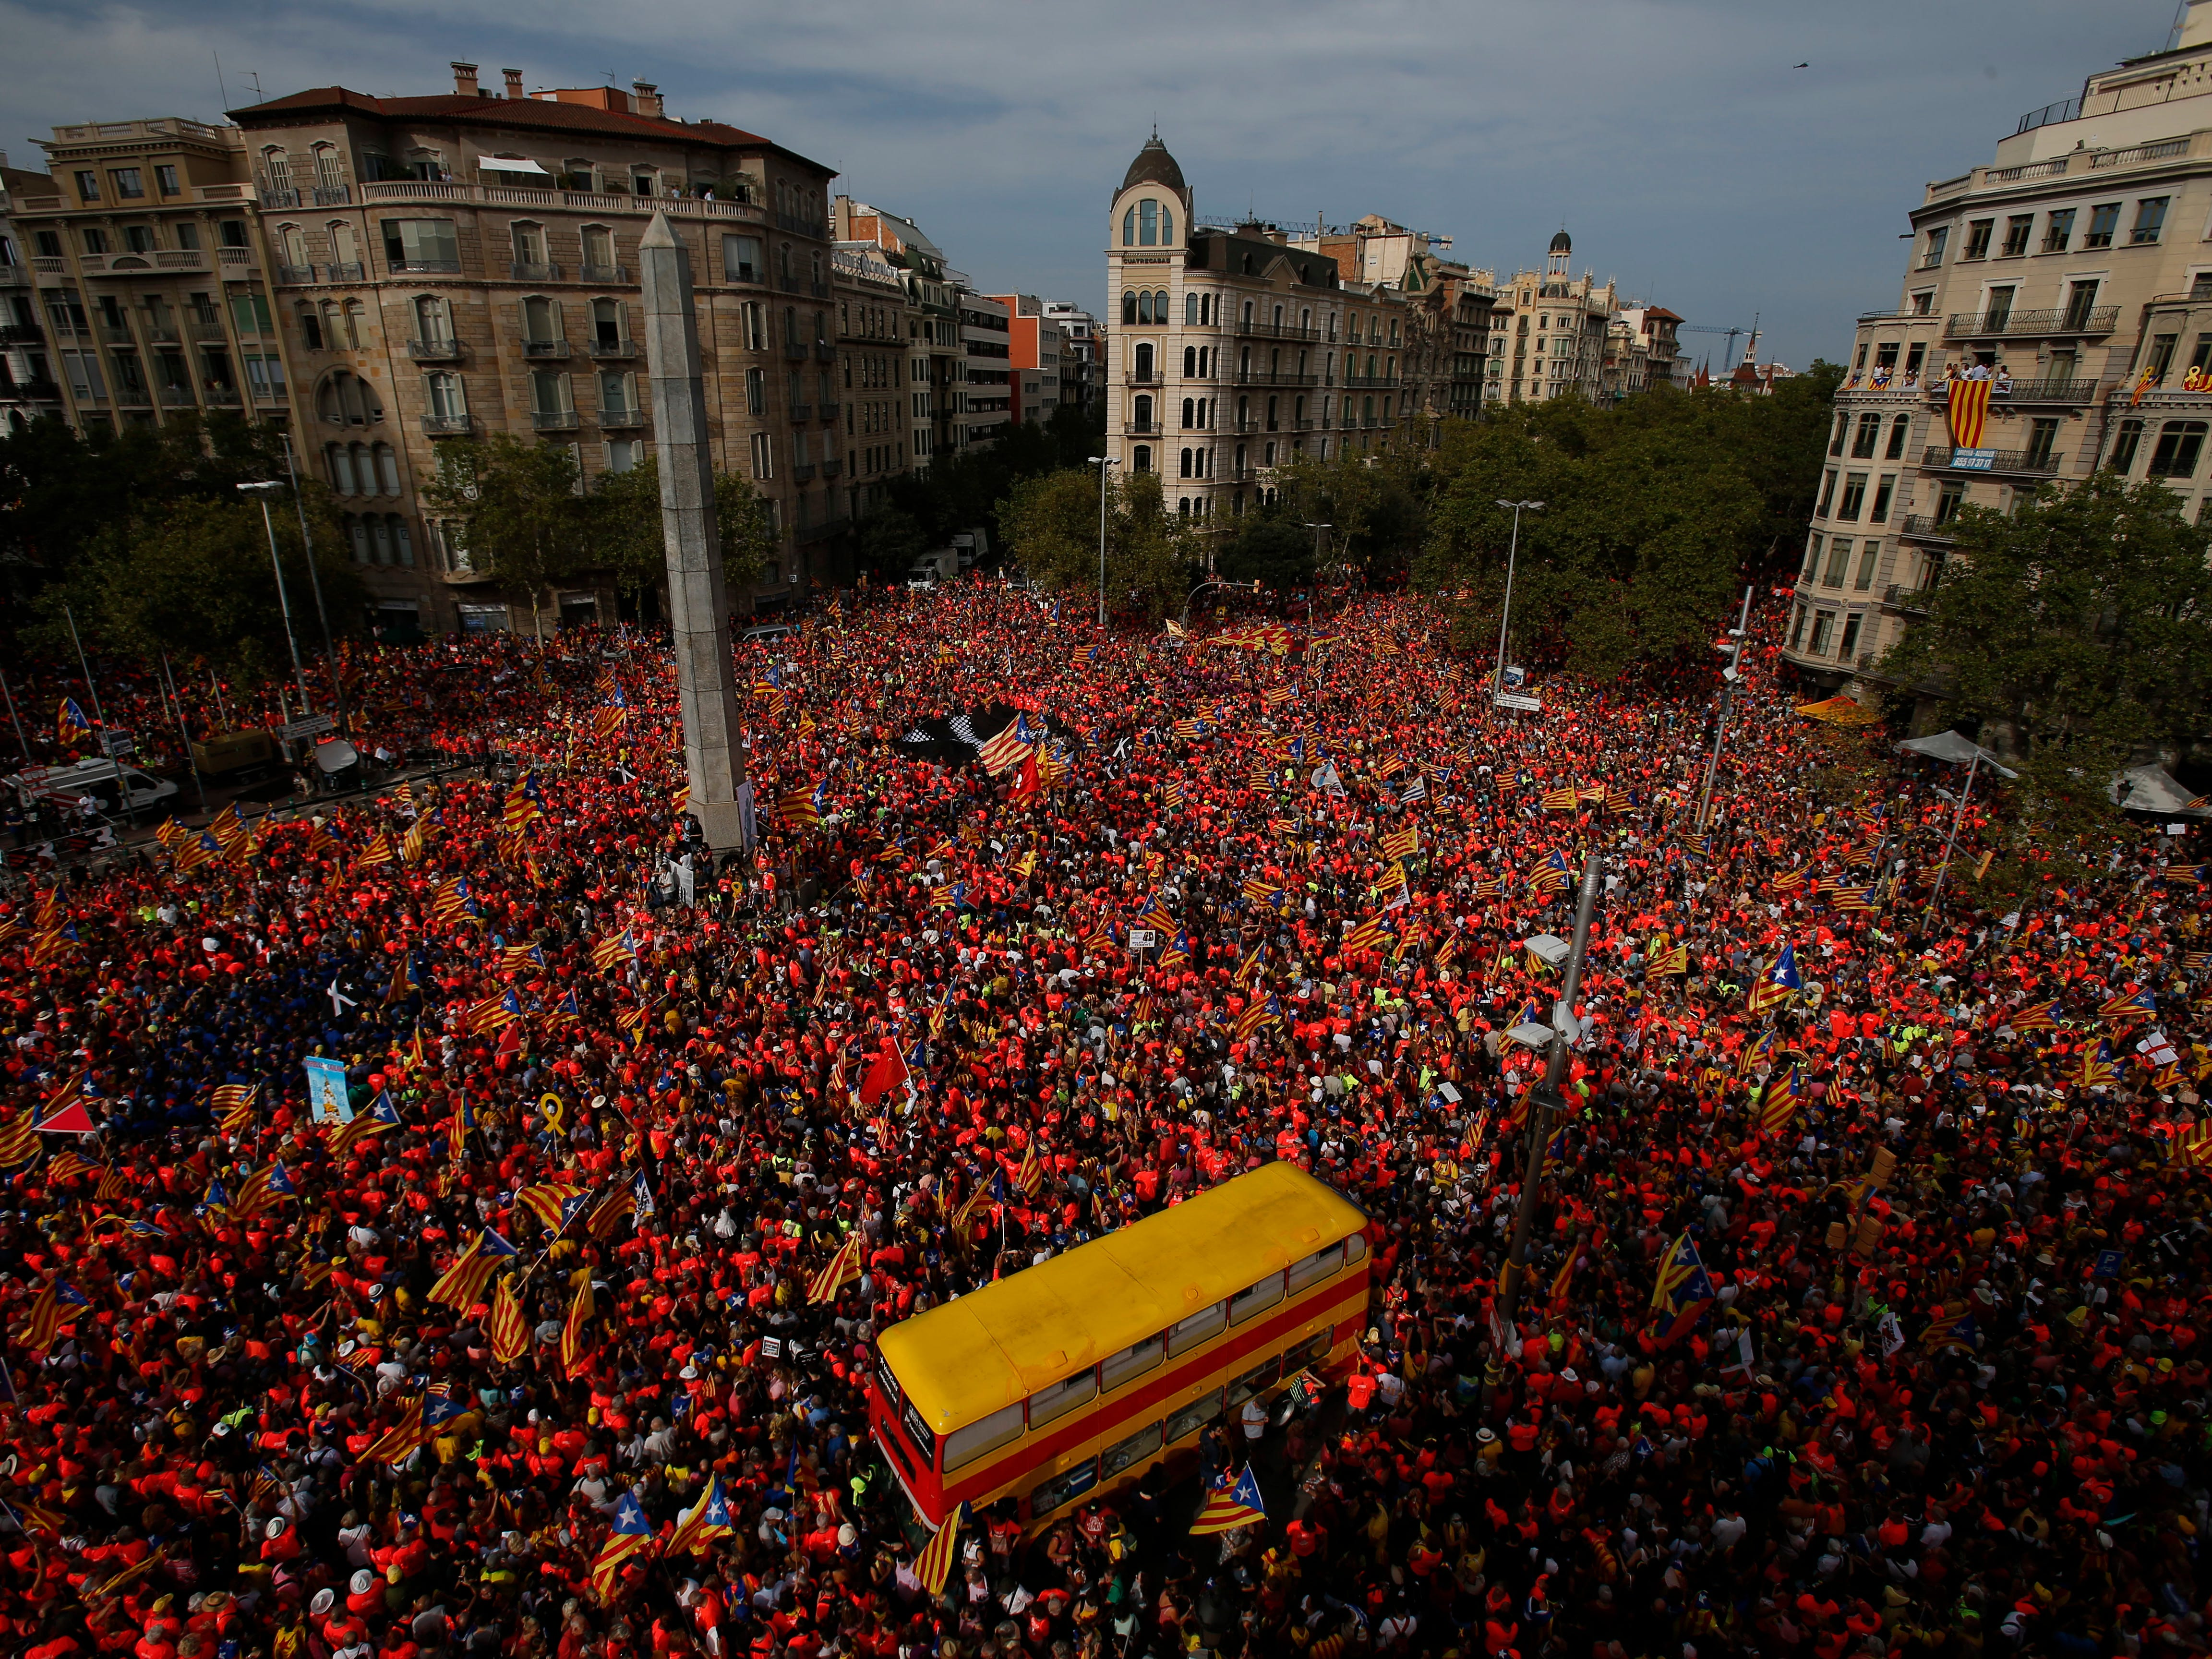 "Pro-Independence demonstrators pack the Avenida Diagonal during the Catalan National Day in Barcelona, Spain, Tuesday, Sept. 11, 2018. Catalan separatist authorities have made a call to flood the streets of Barcelona later on Tuesday in a march calling for independence from Spain. The traditional on the Sept. 11 ""Diada,"" which remembers the fall of the Catalan capital to Spanish forces in 1714, is expected to attract this year hundreds of thousands of secession sympathisers."